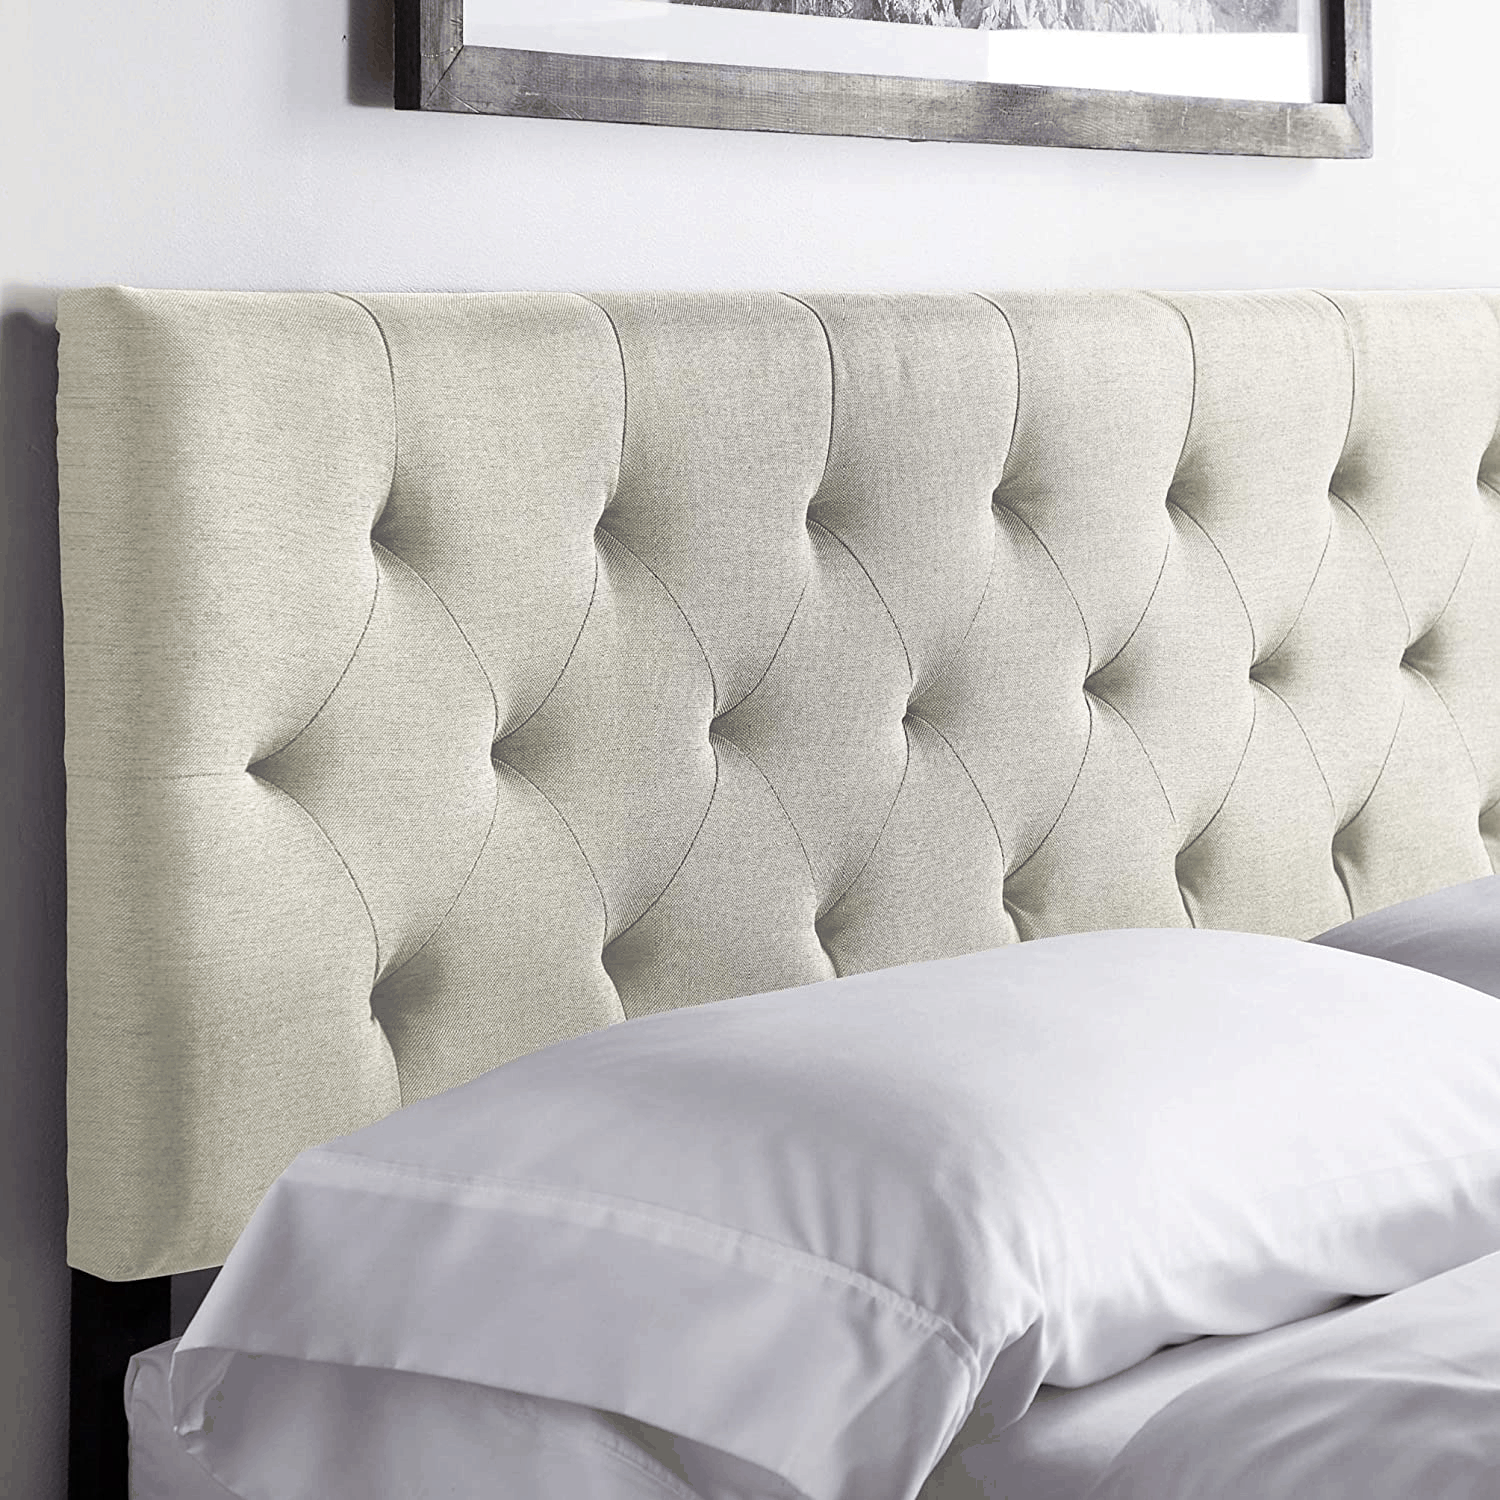 headboard height and size chart how